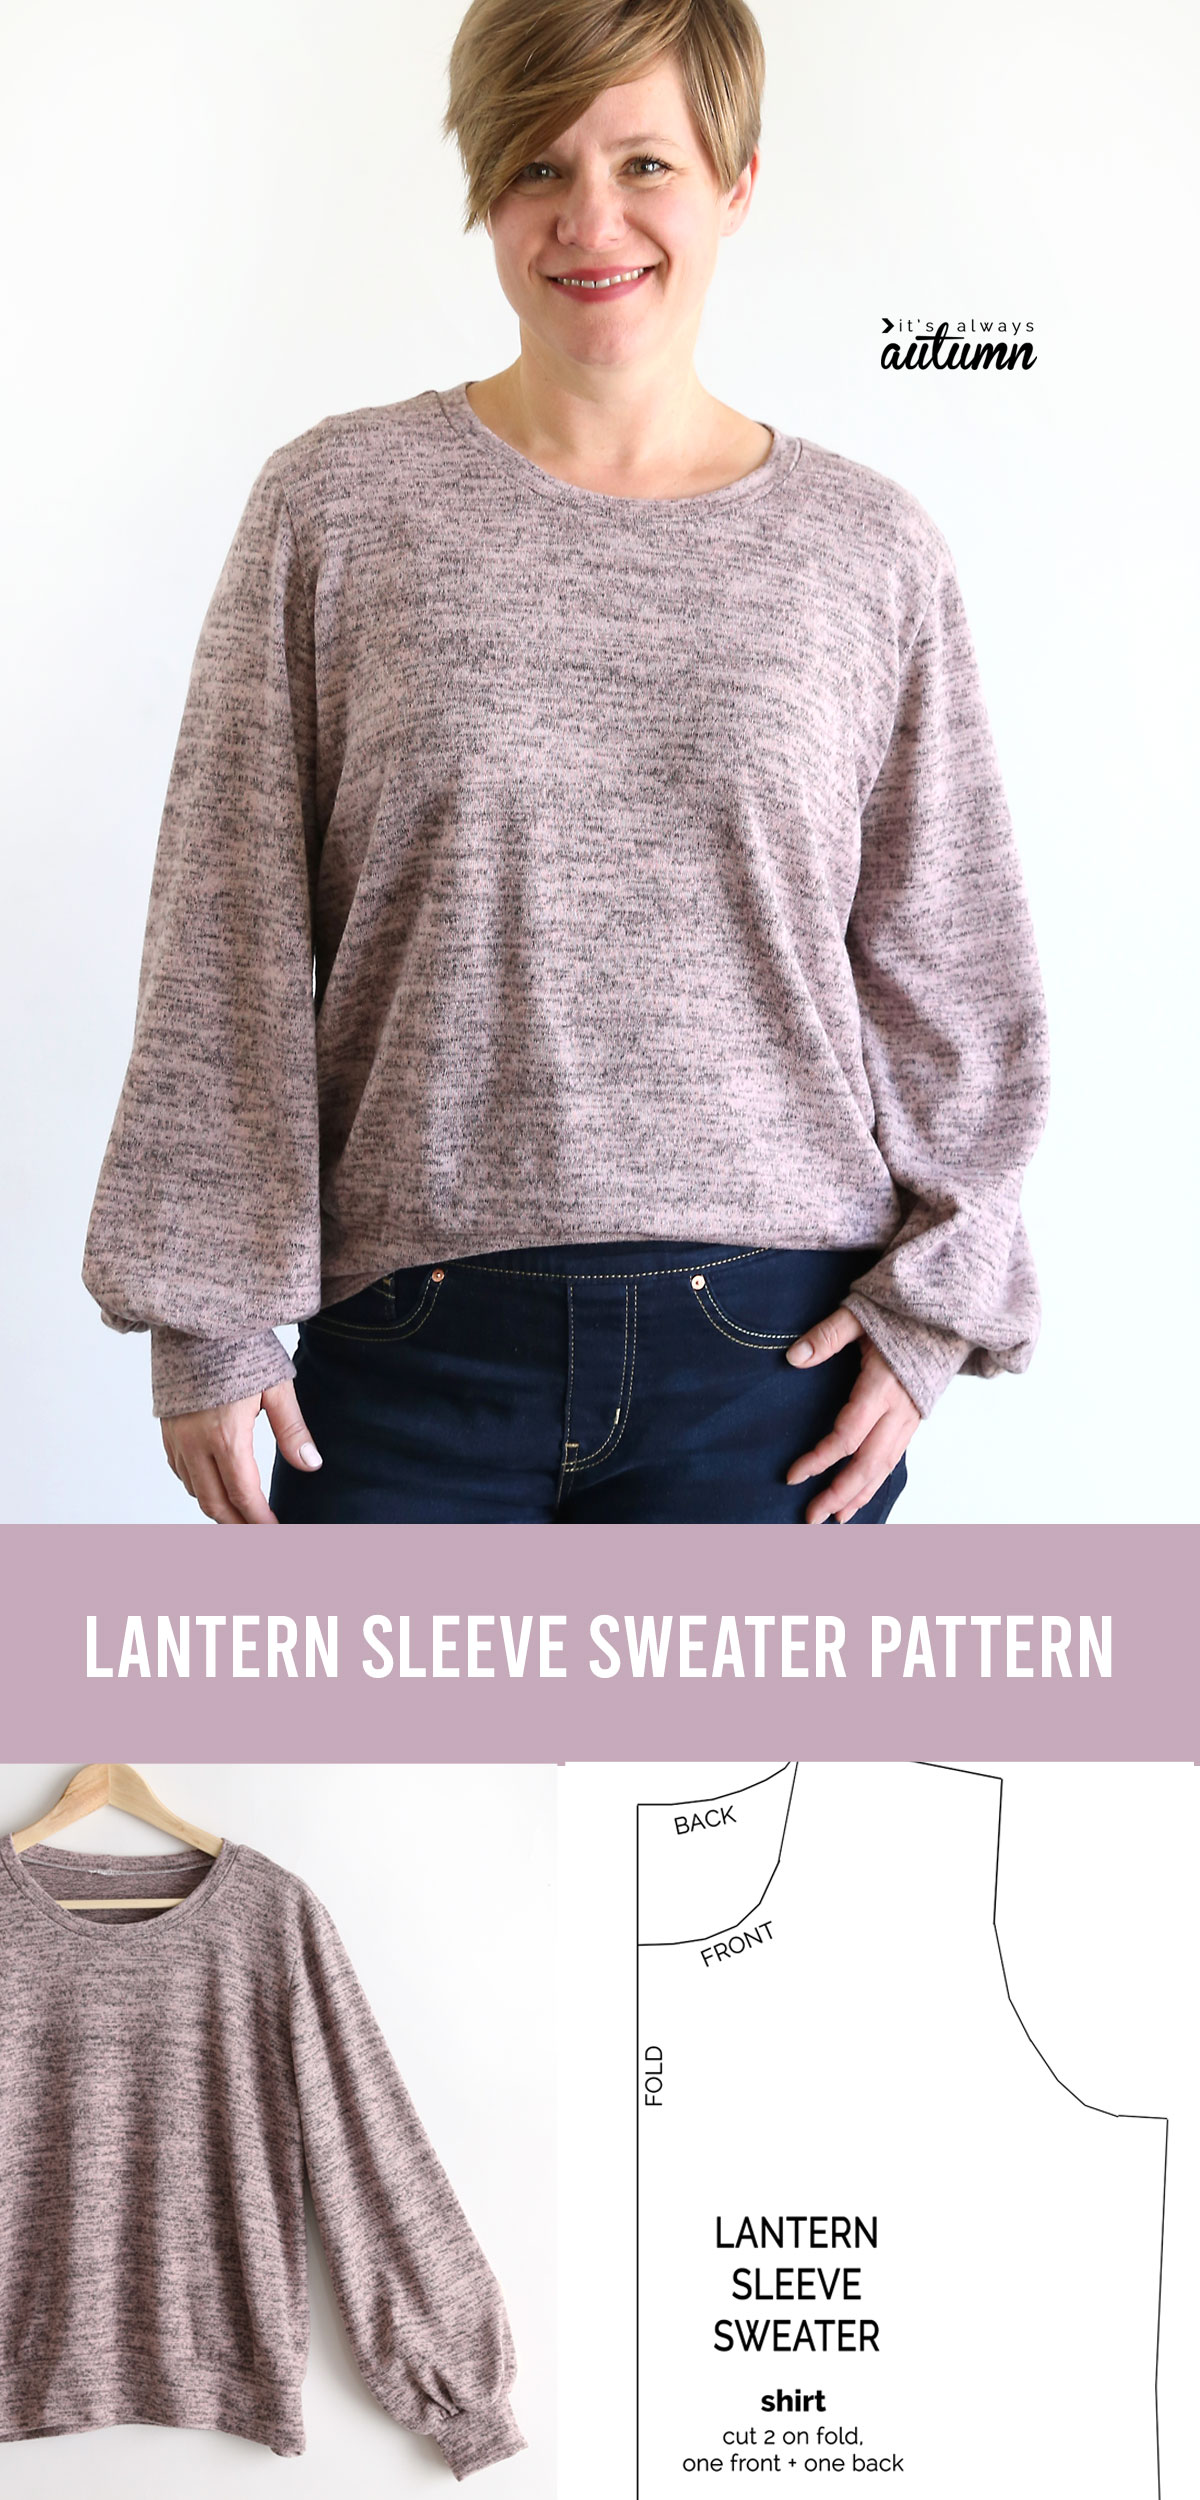 Collage photo: woman wearing lantern sleeve sweater; lantern sleeve sweater pattern, sweater with large sleeves on a hanger